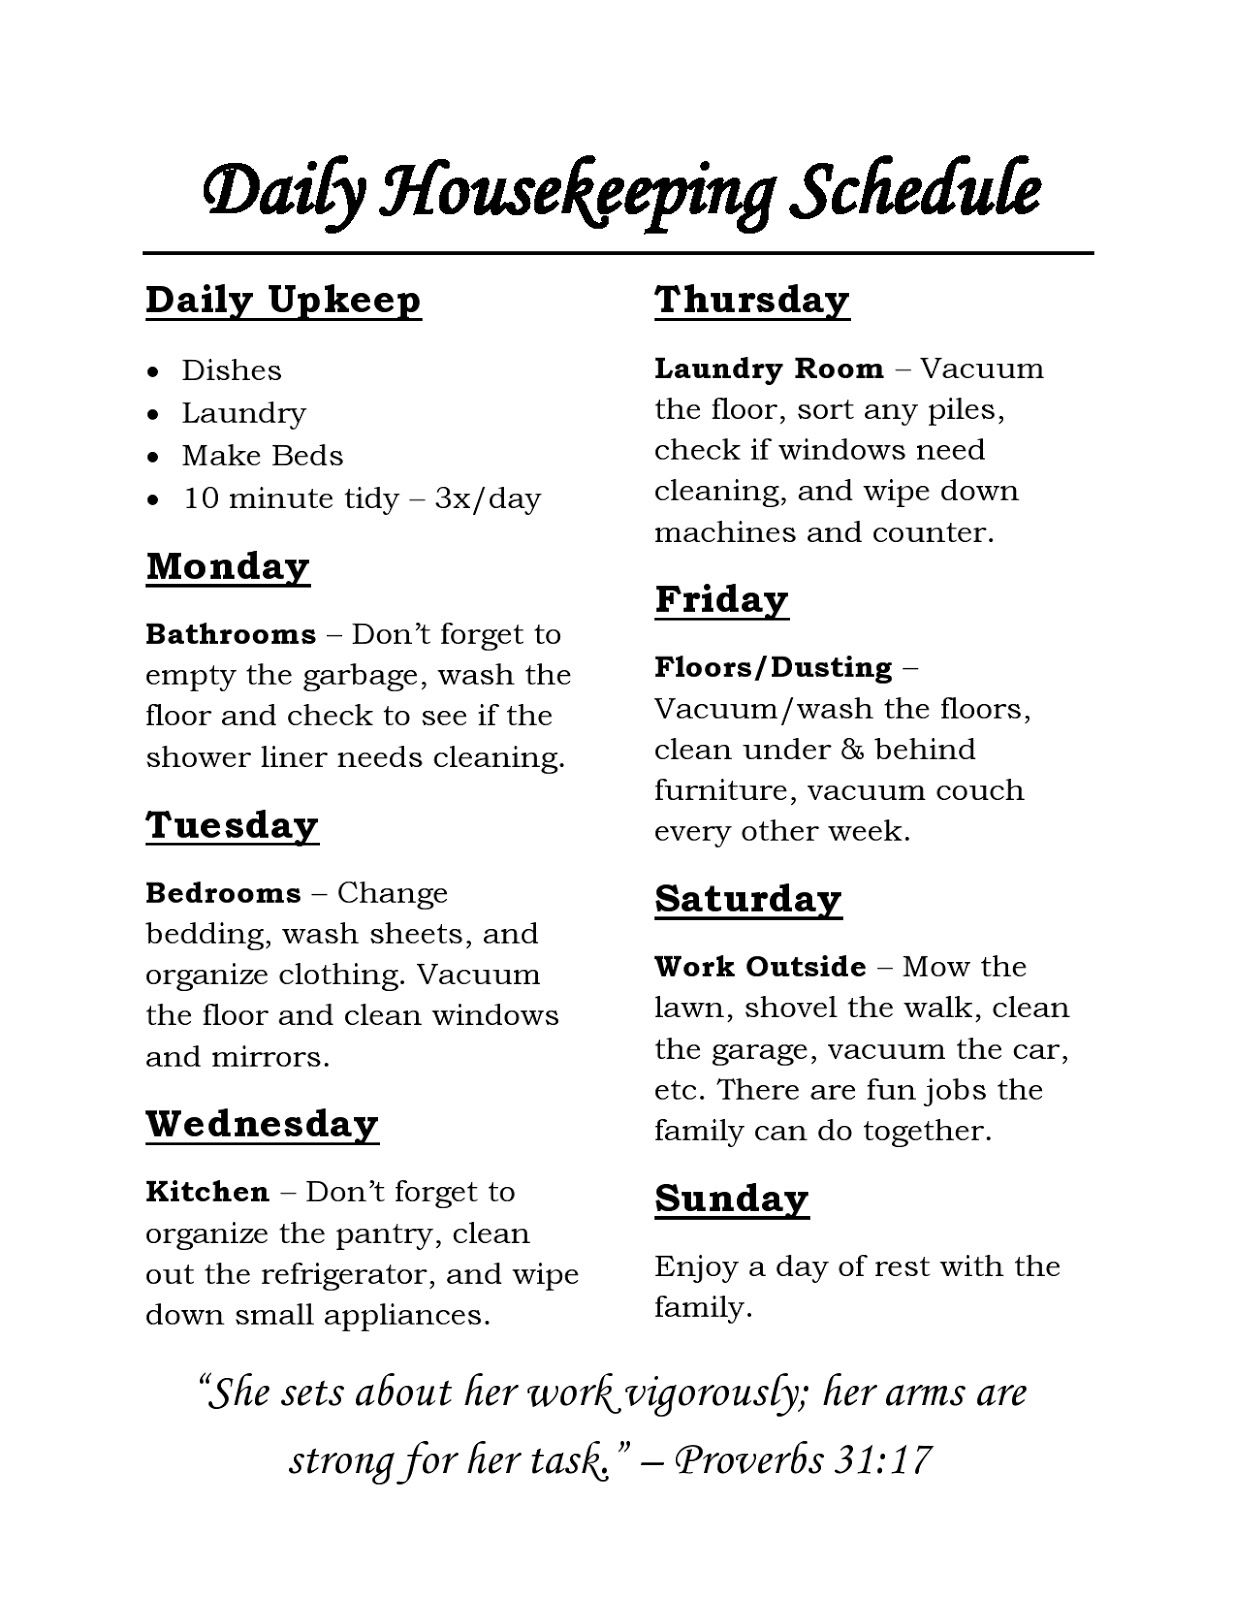 housekeeping schedule chores for each day of the week and daily